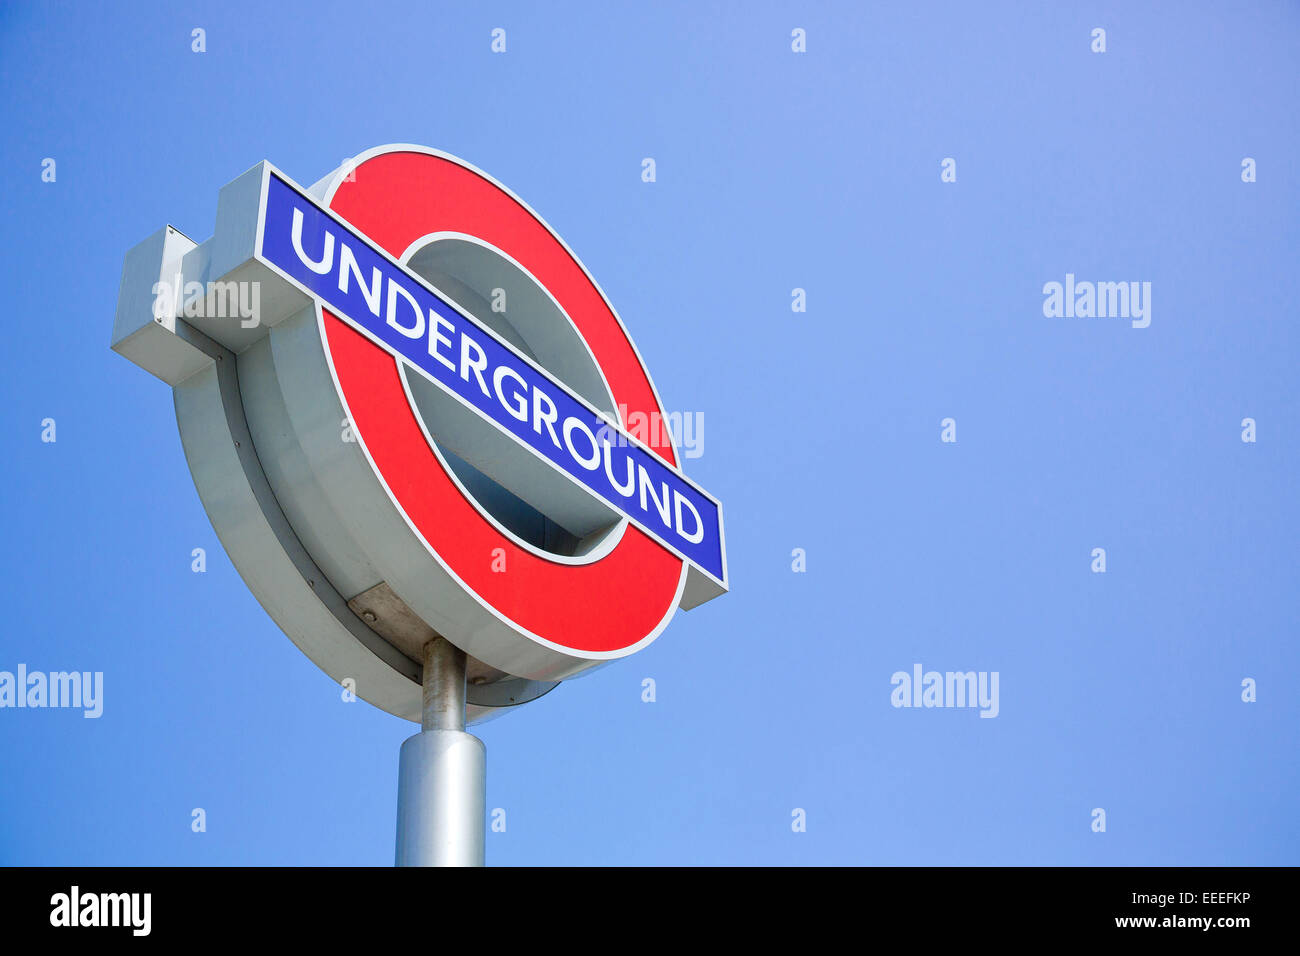 Logo London Underground sign against a blue sky Photo Stock